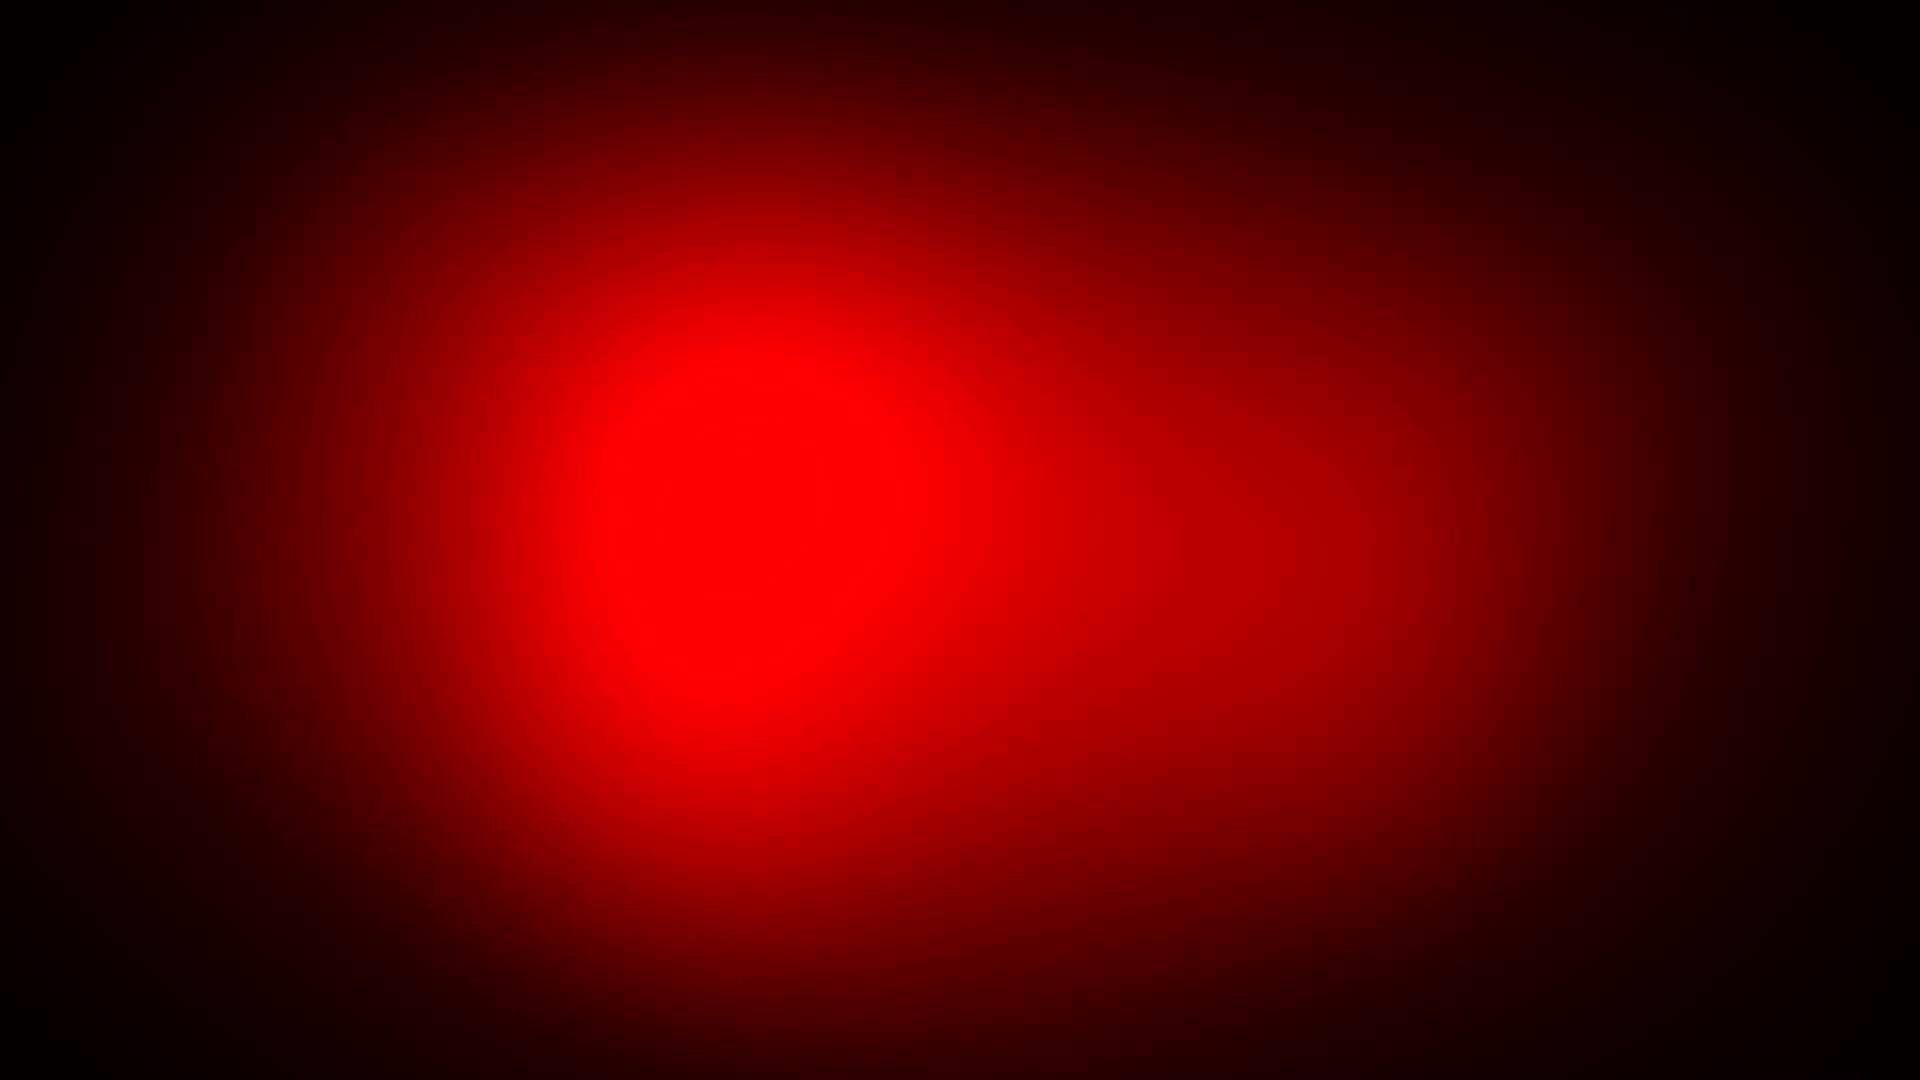 spirits-red - FREE Video Background HD Loops 1080p - YouTube ...